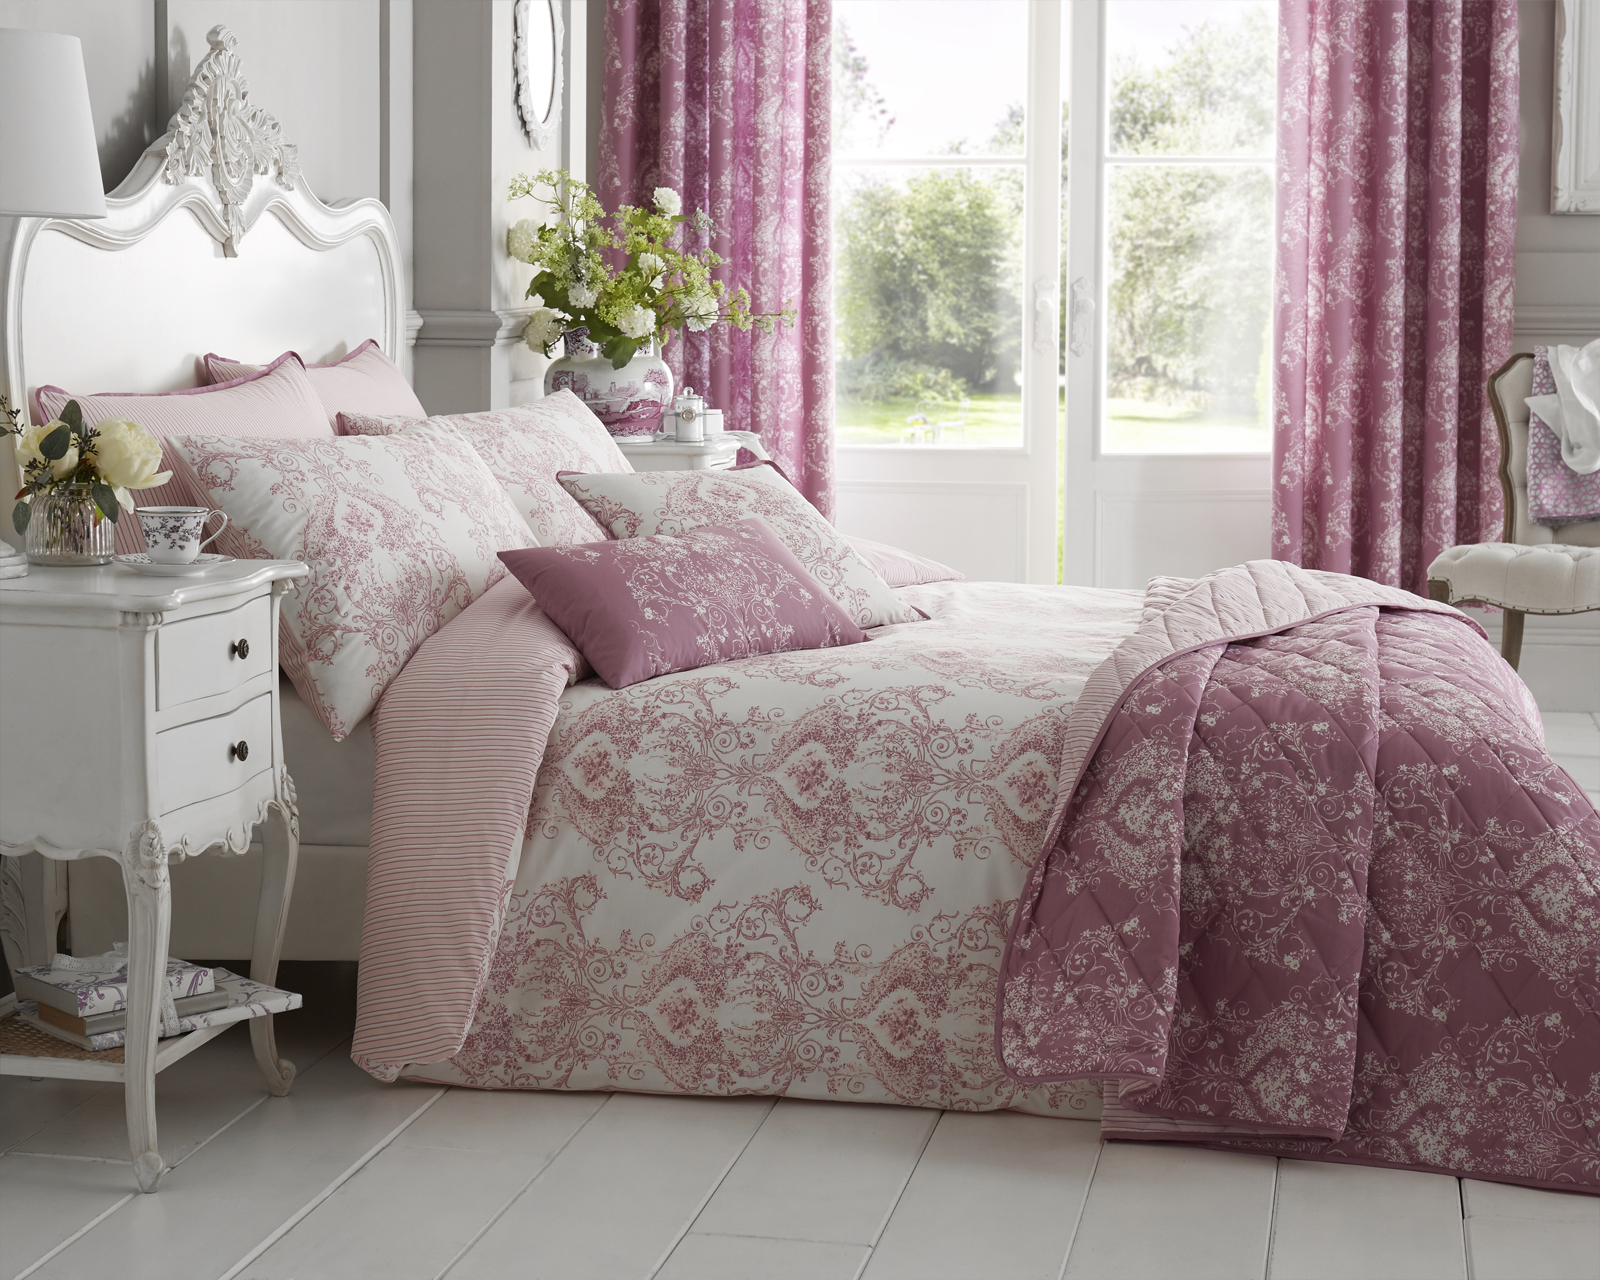 Toile Floral Damask Bedding Range in Pink